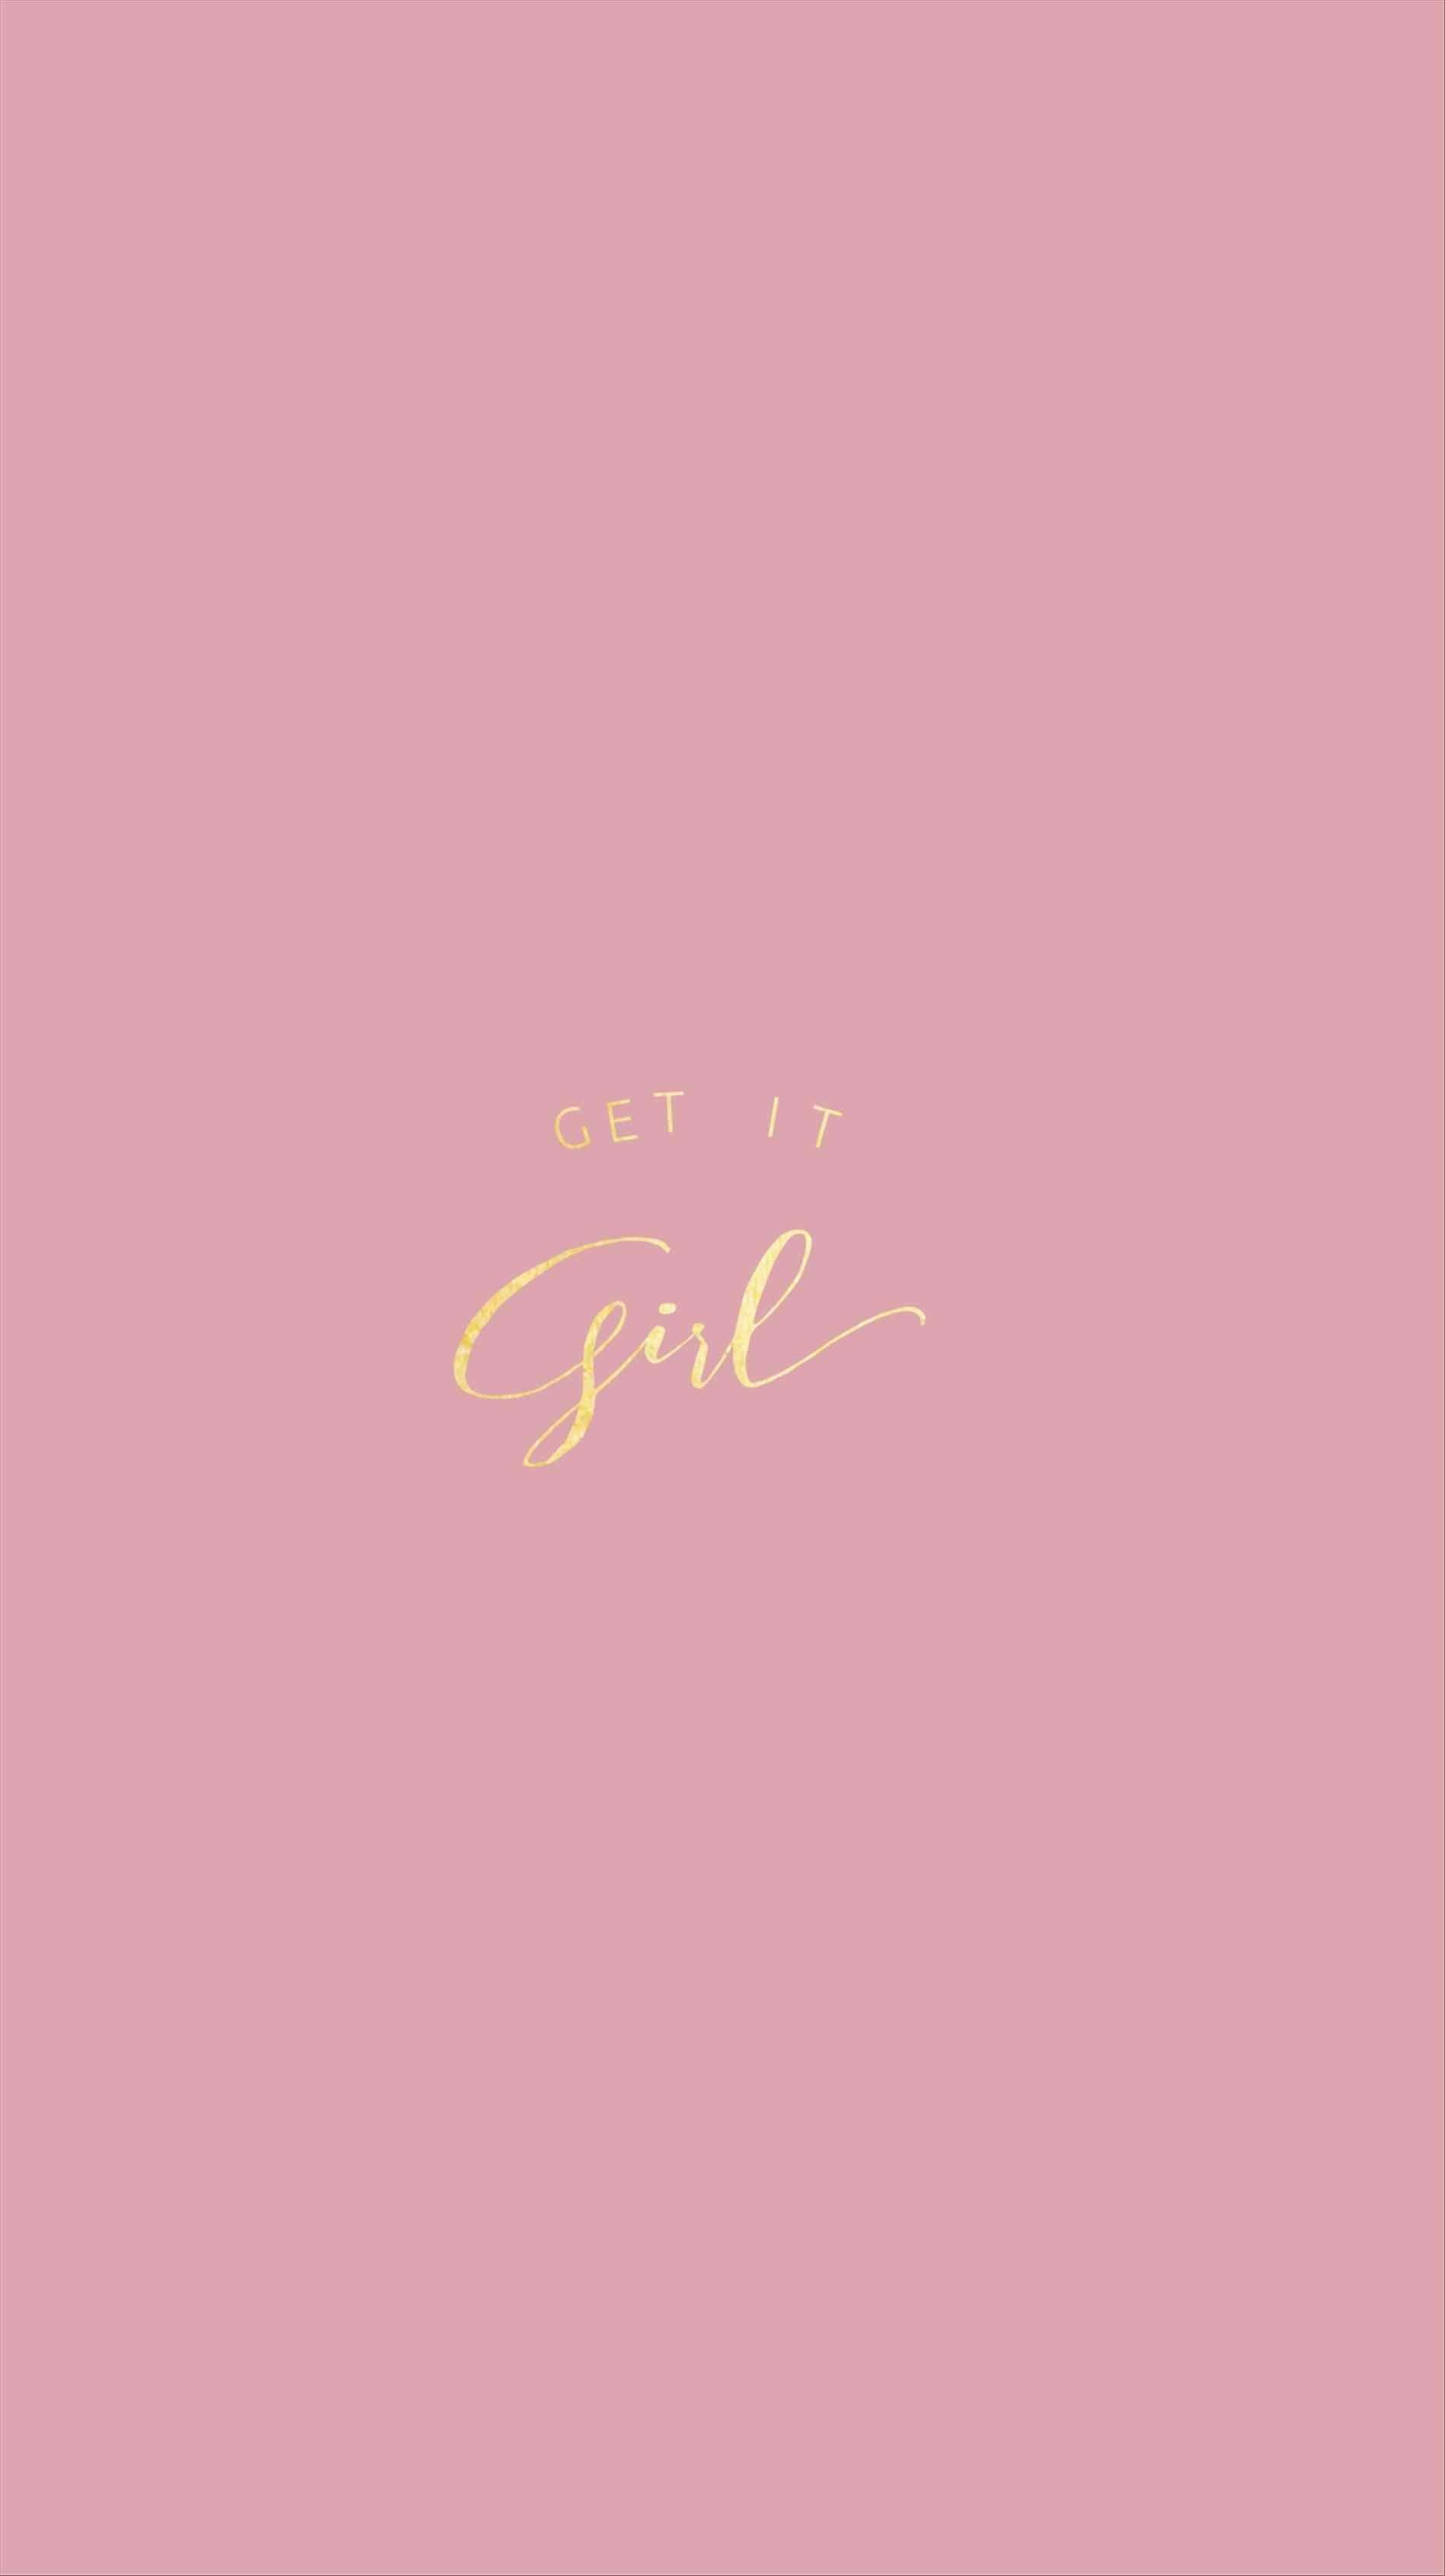 Pin By Megan Gallagher On Phone Wallpapers Cute Simple Wallpapers Rose Gold Wallpaper